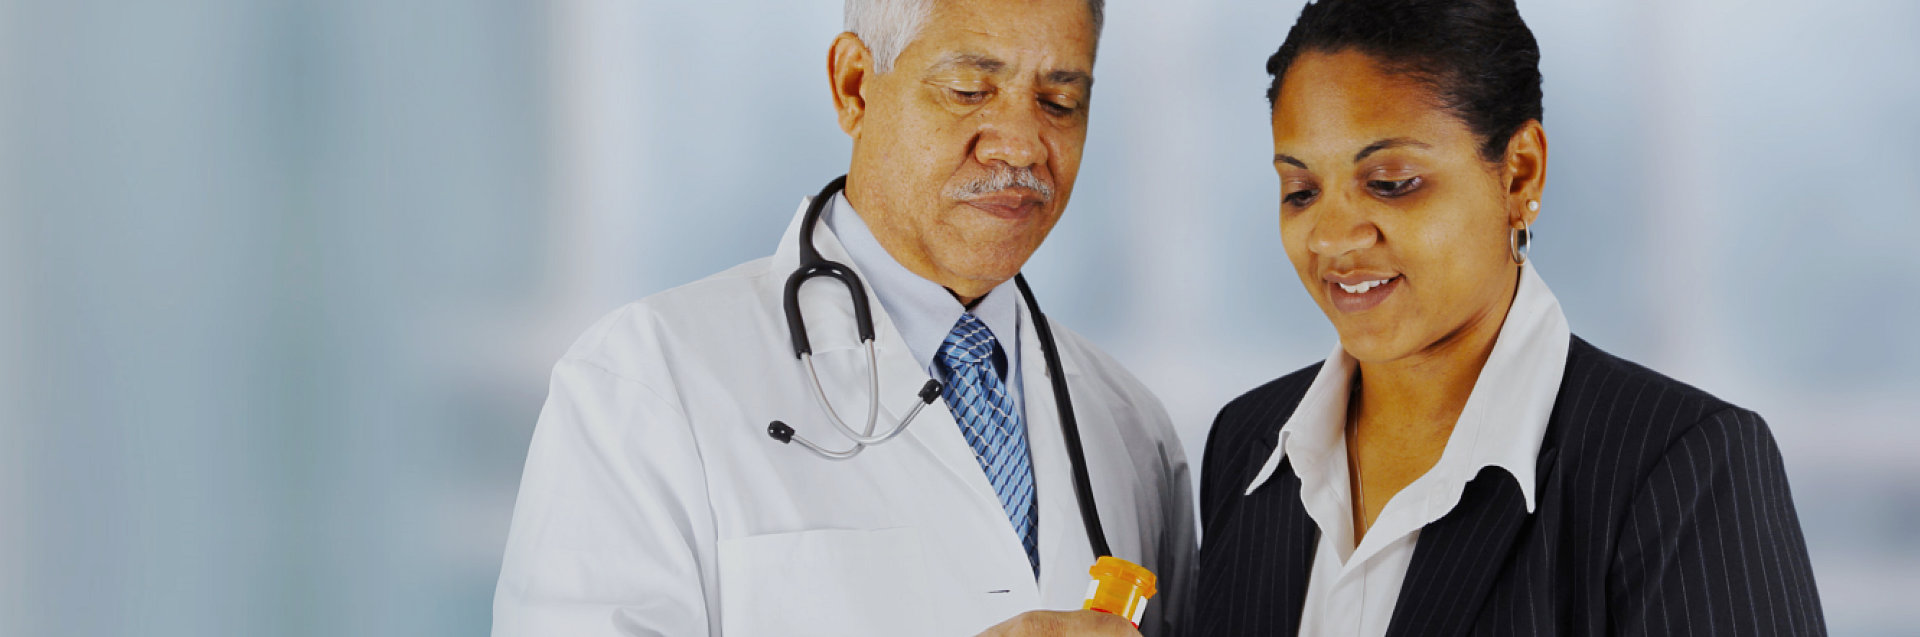 doctor and woman looking at medicine